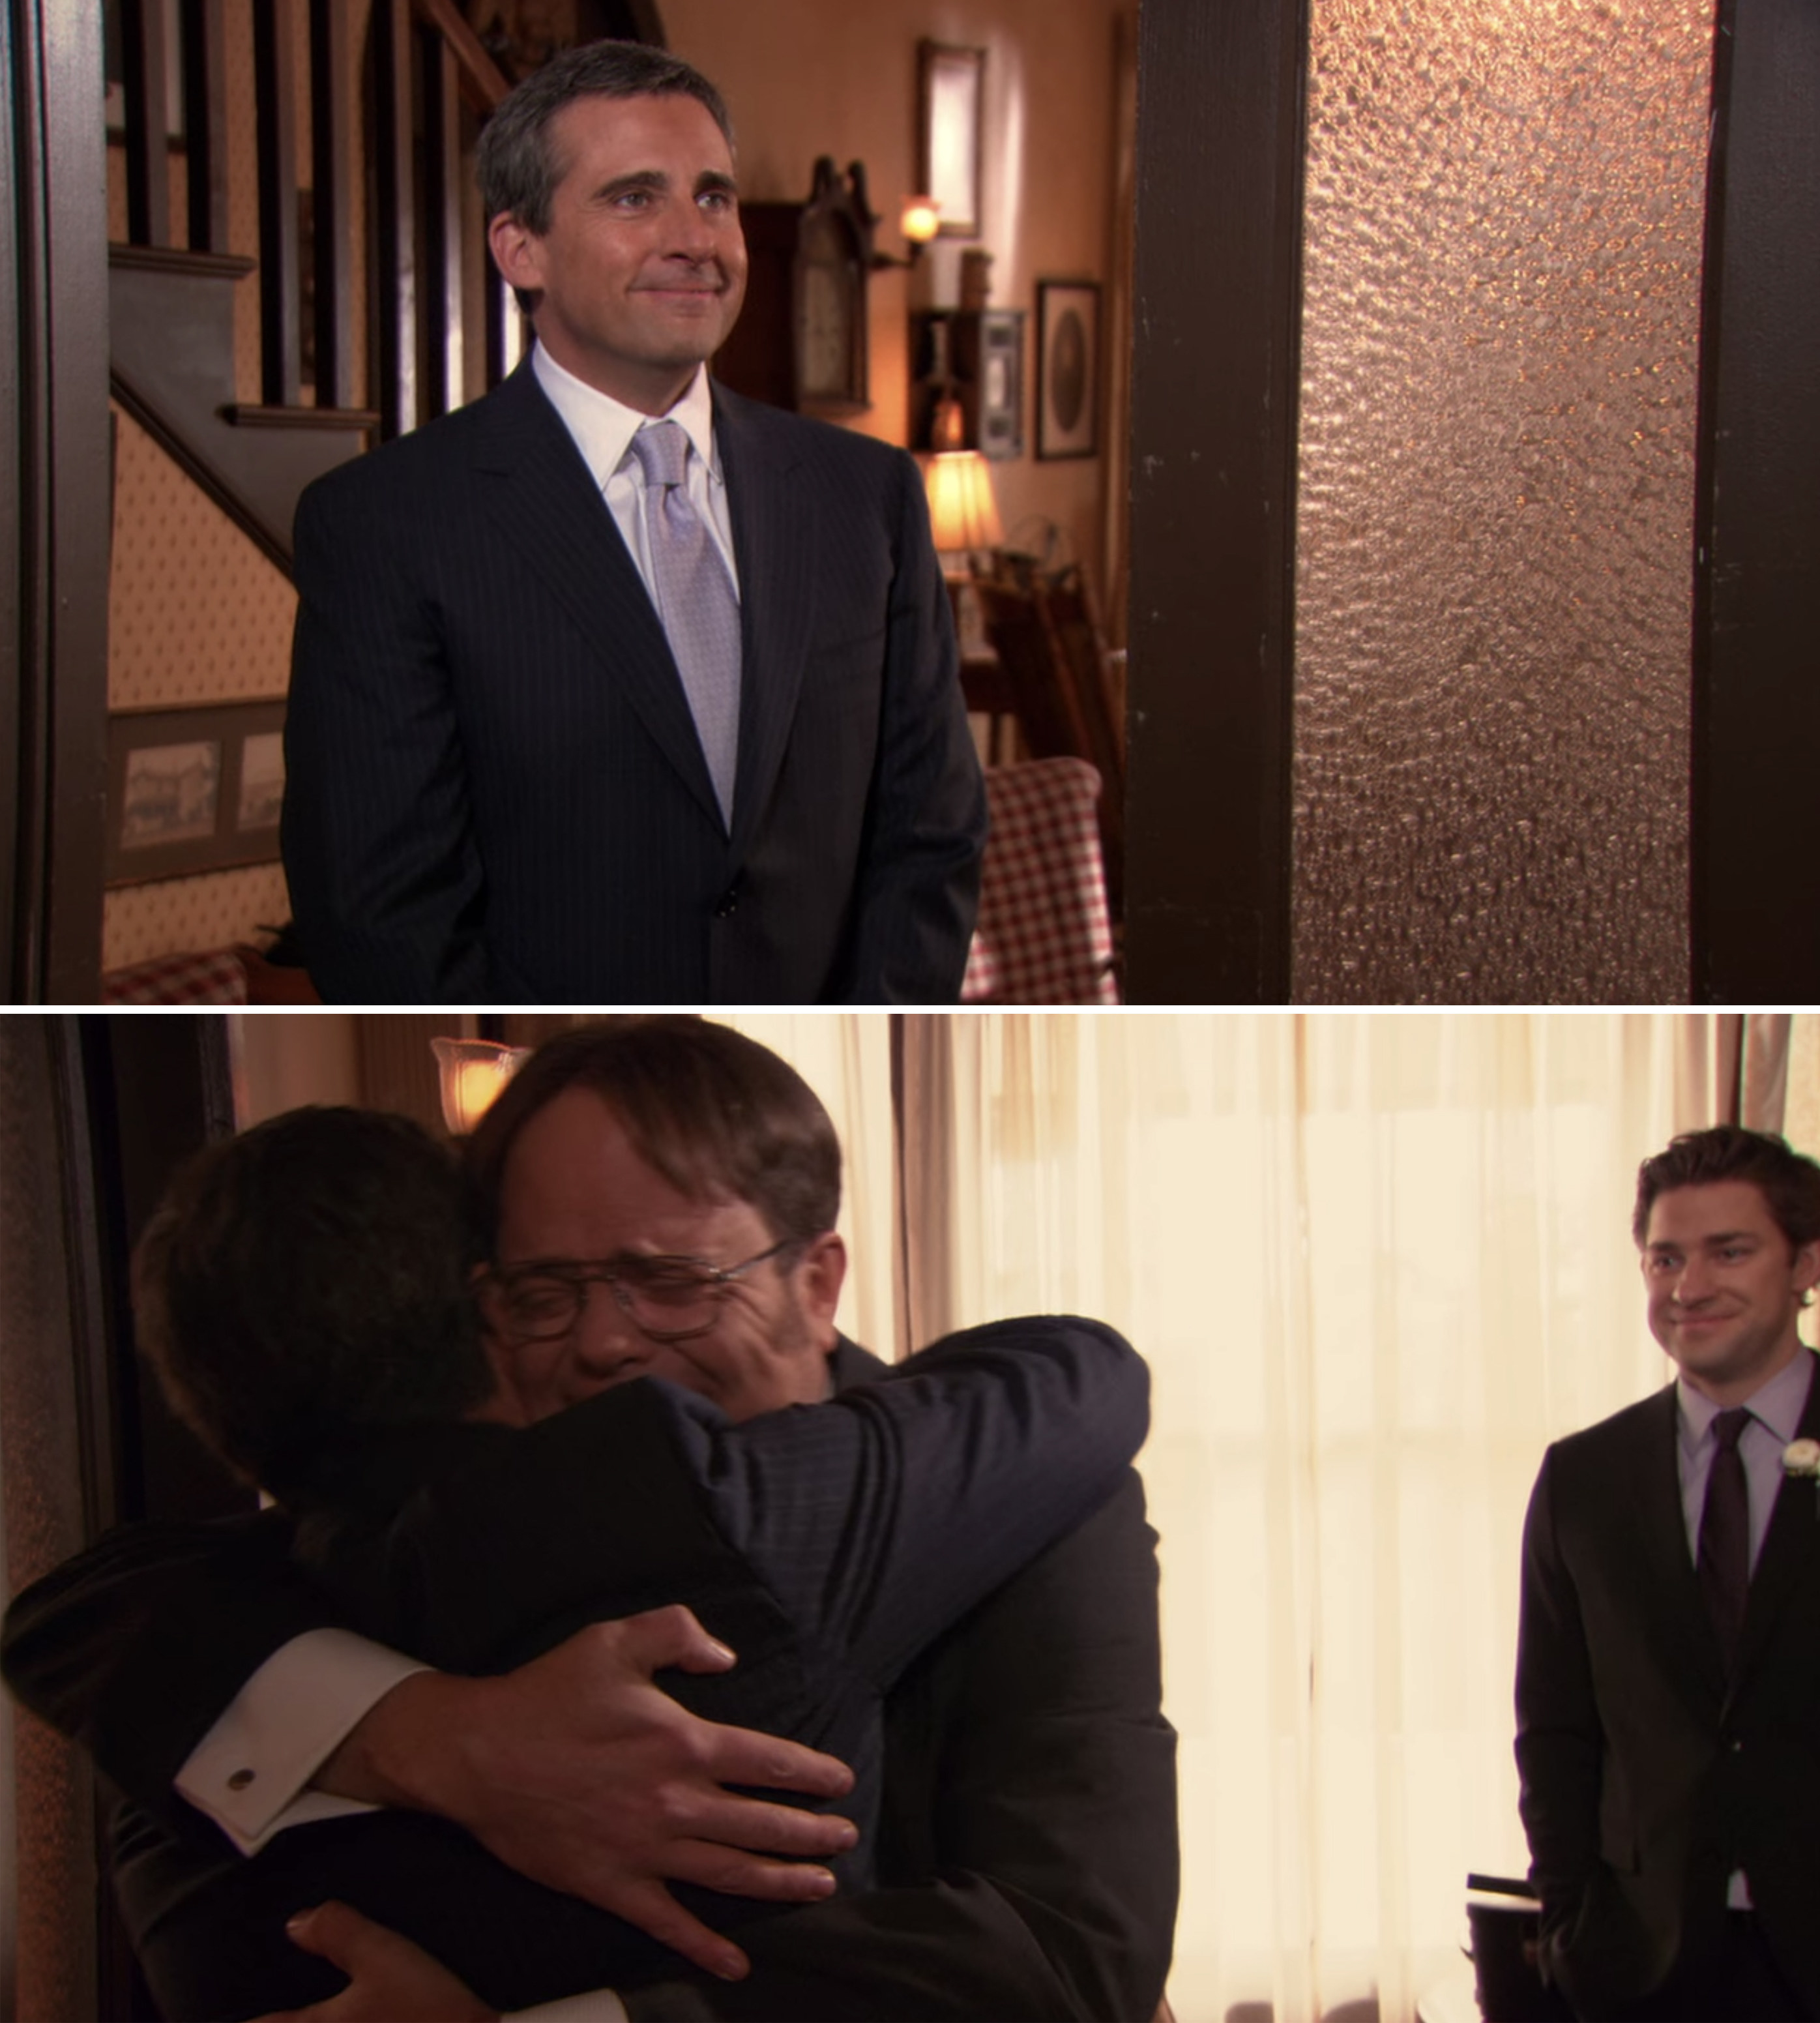 Dwight and Michael hugging after Michael surprises Dwight at his wedding